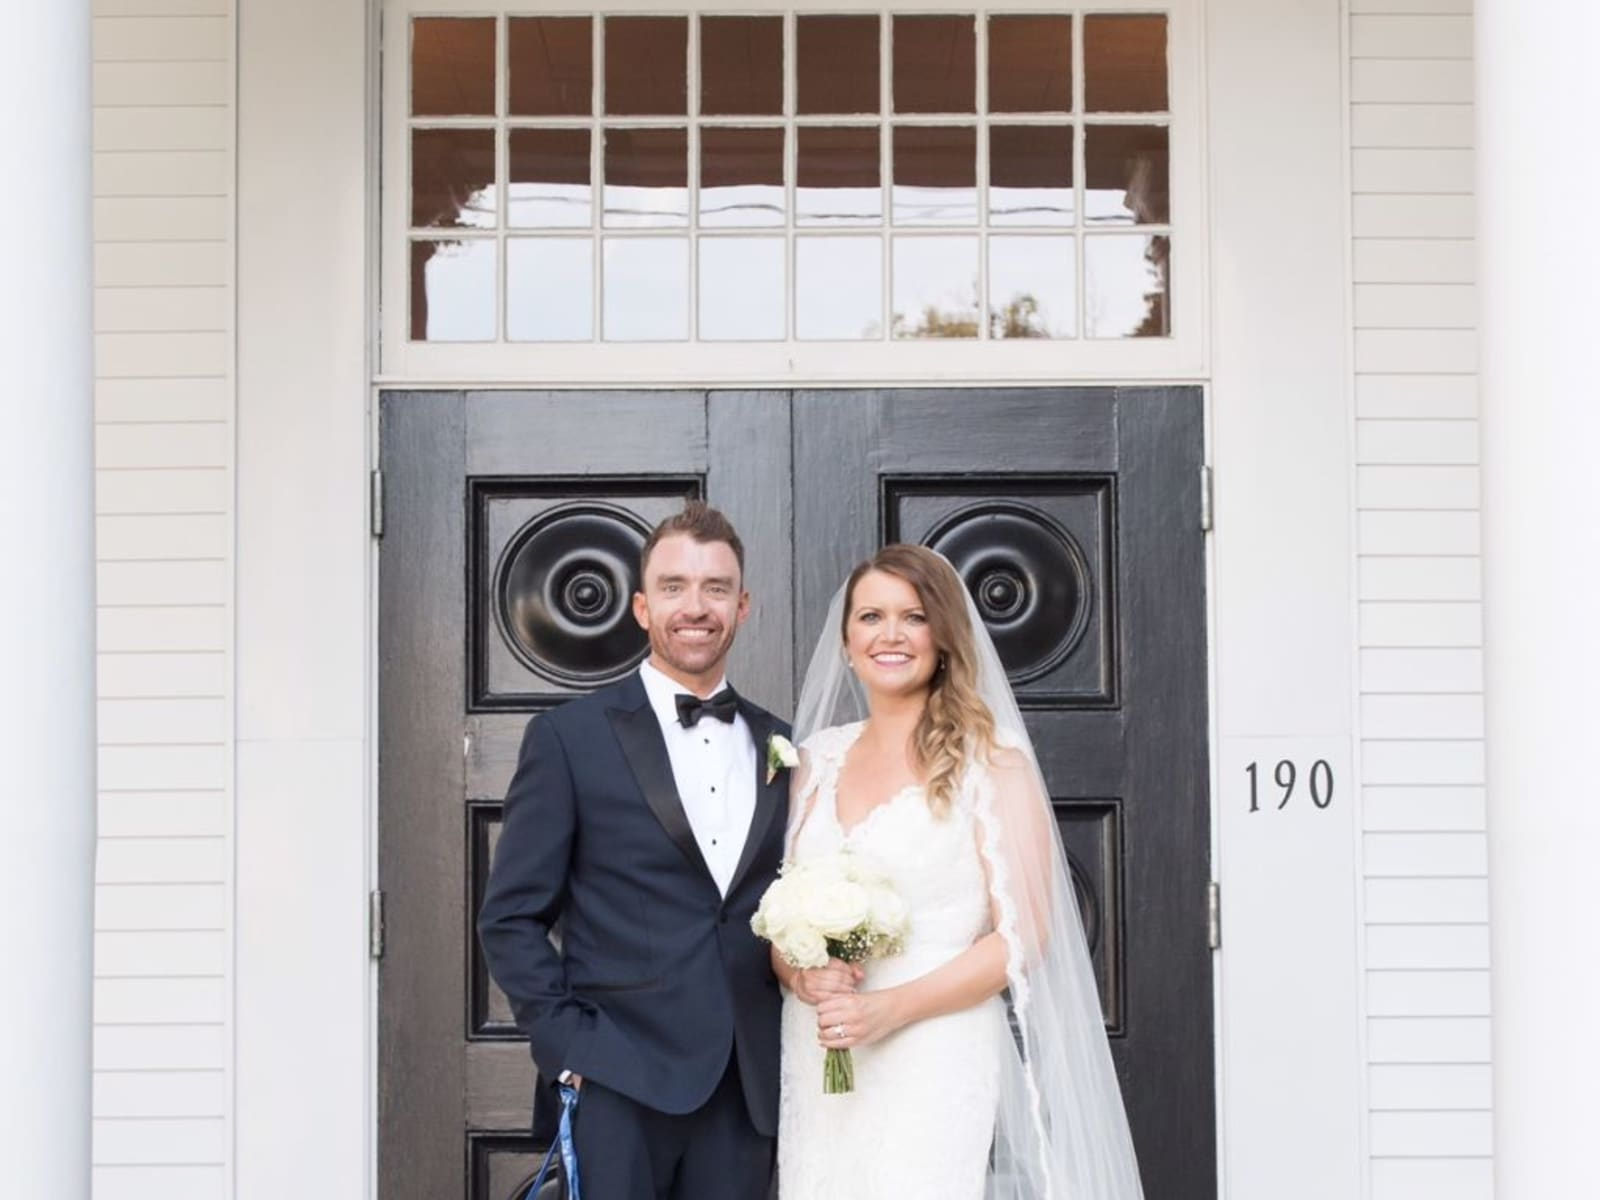 Caitlin & Robert from Boston, Massachusetts, United States